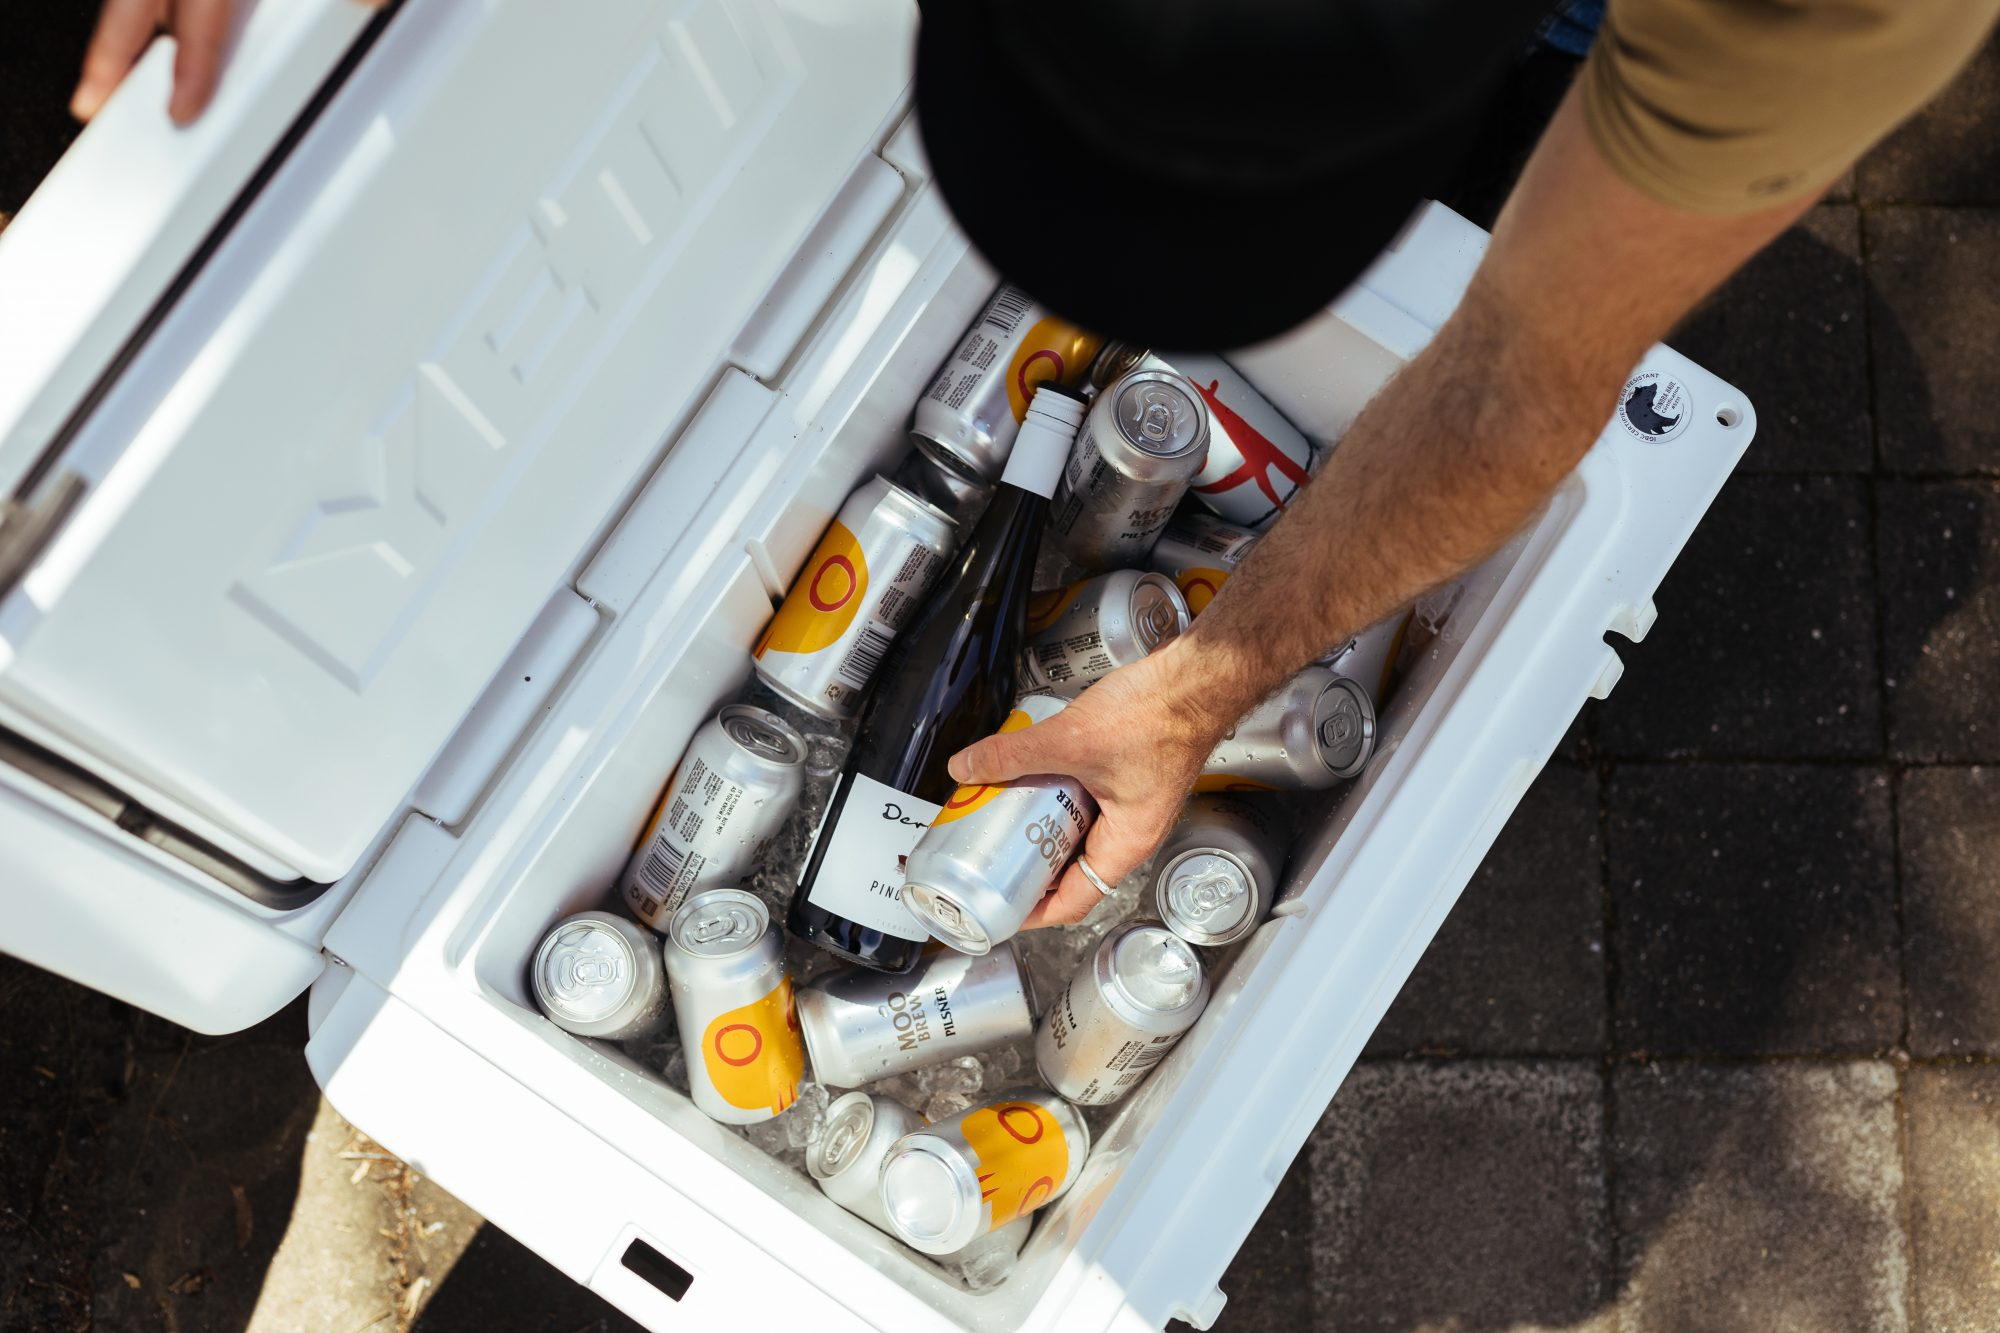 Man reaching into cooler packed with drinks